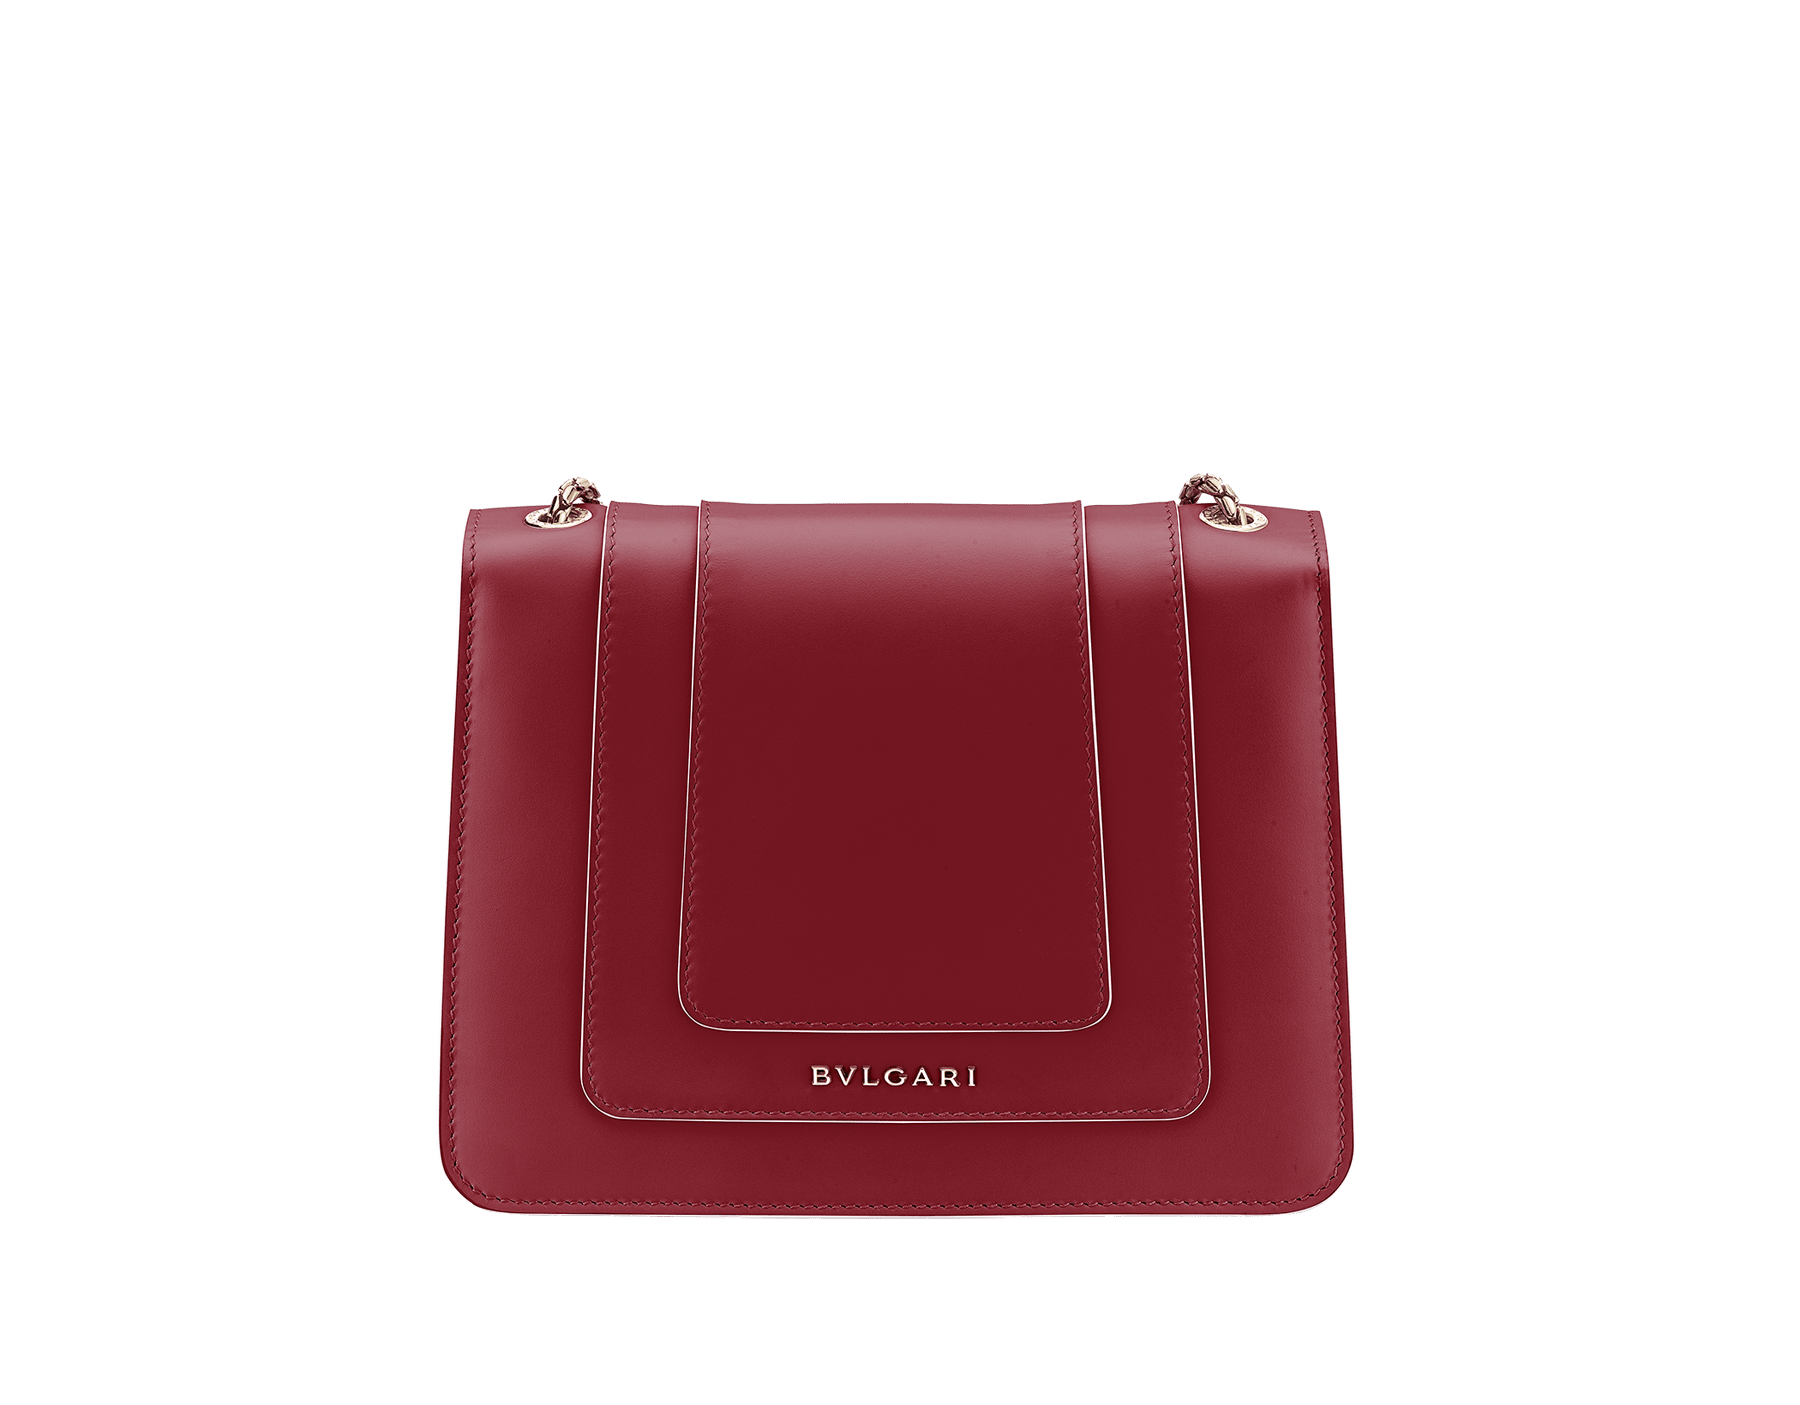 Serpenti Forever crossbody bag in Roman garnet calf leather, with rosa di francia calf leather sides. Iconic snakehead closure in light gold plated brass embellished rosa di francia and black enamel and black onyx eyes . 289035 image 6